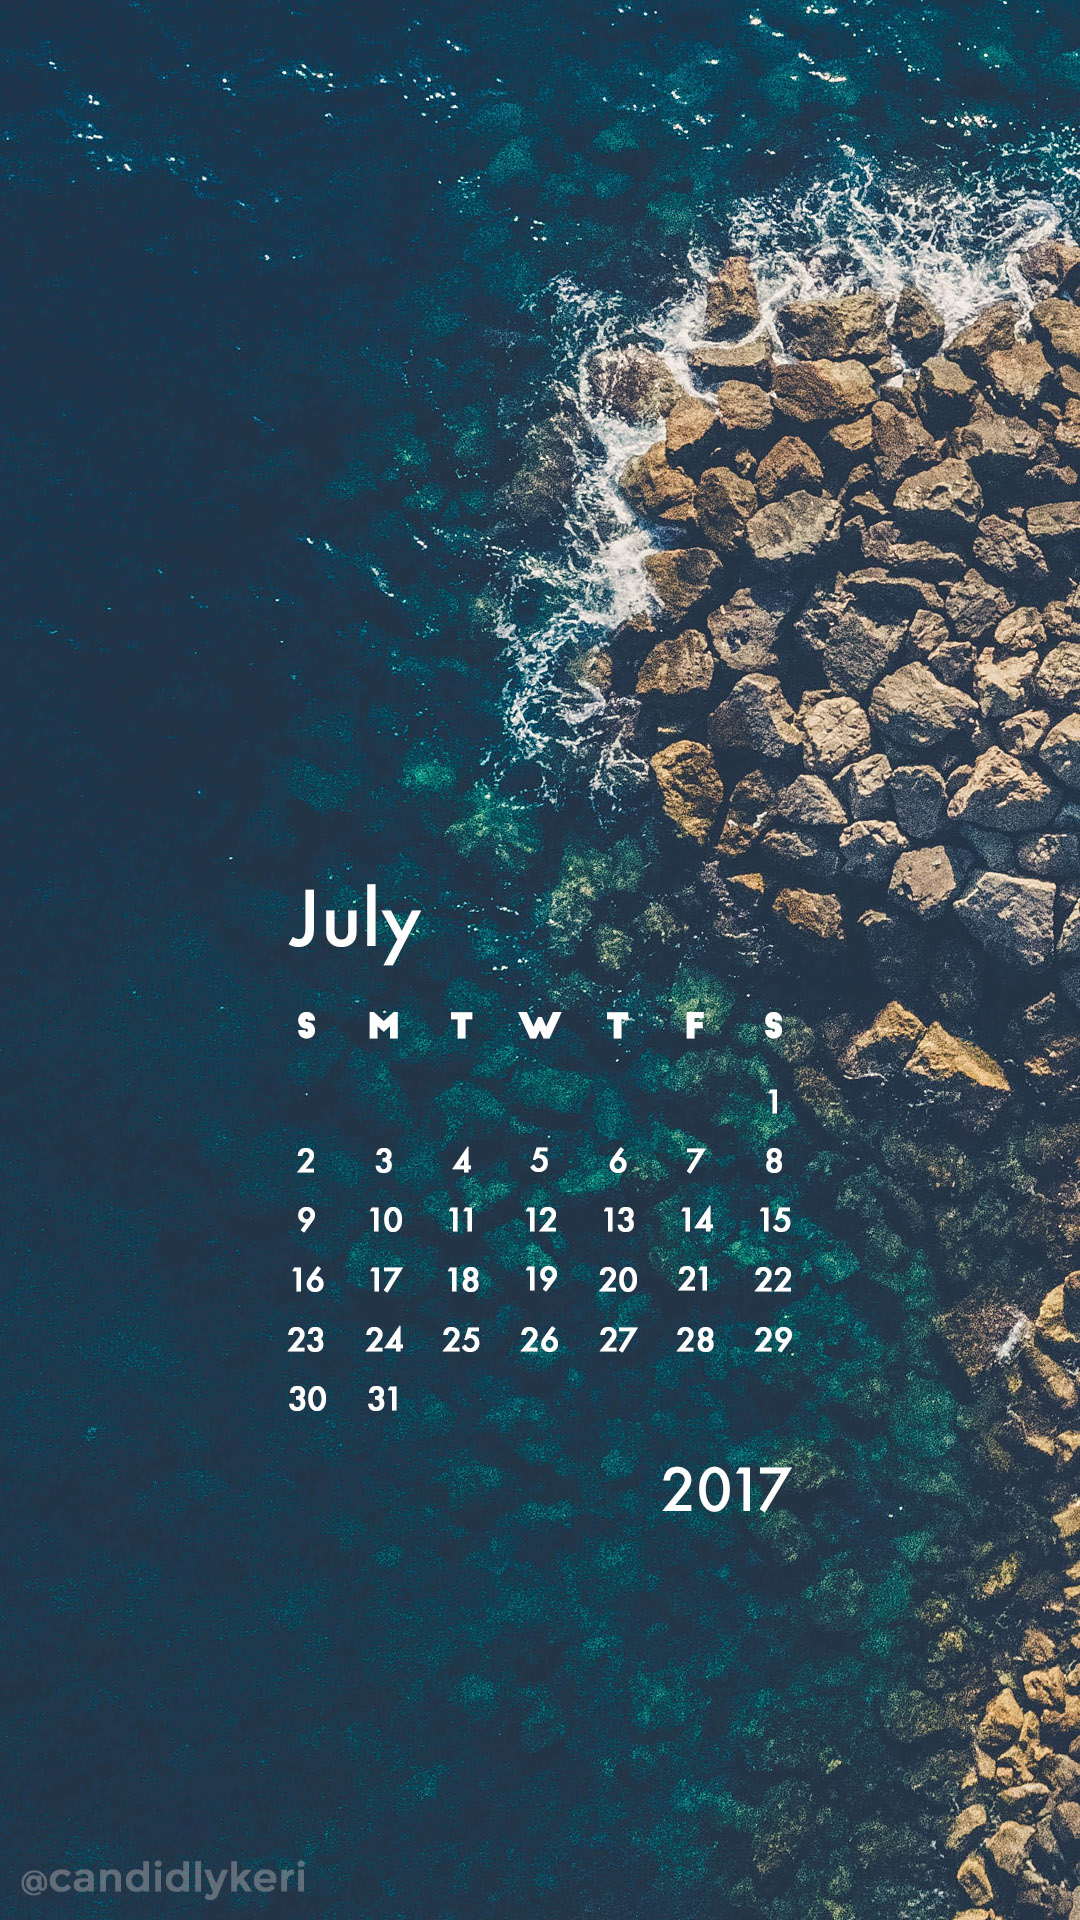 Ocean-waves-crashing-rocks-summer-July-calendar-you-can-download-for-free-on-the-blog-wallpaper-wpc9008195